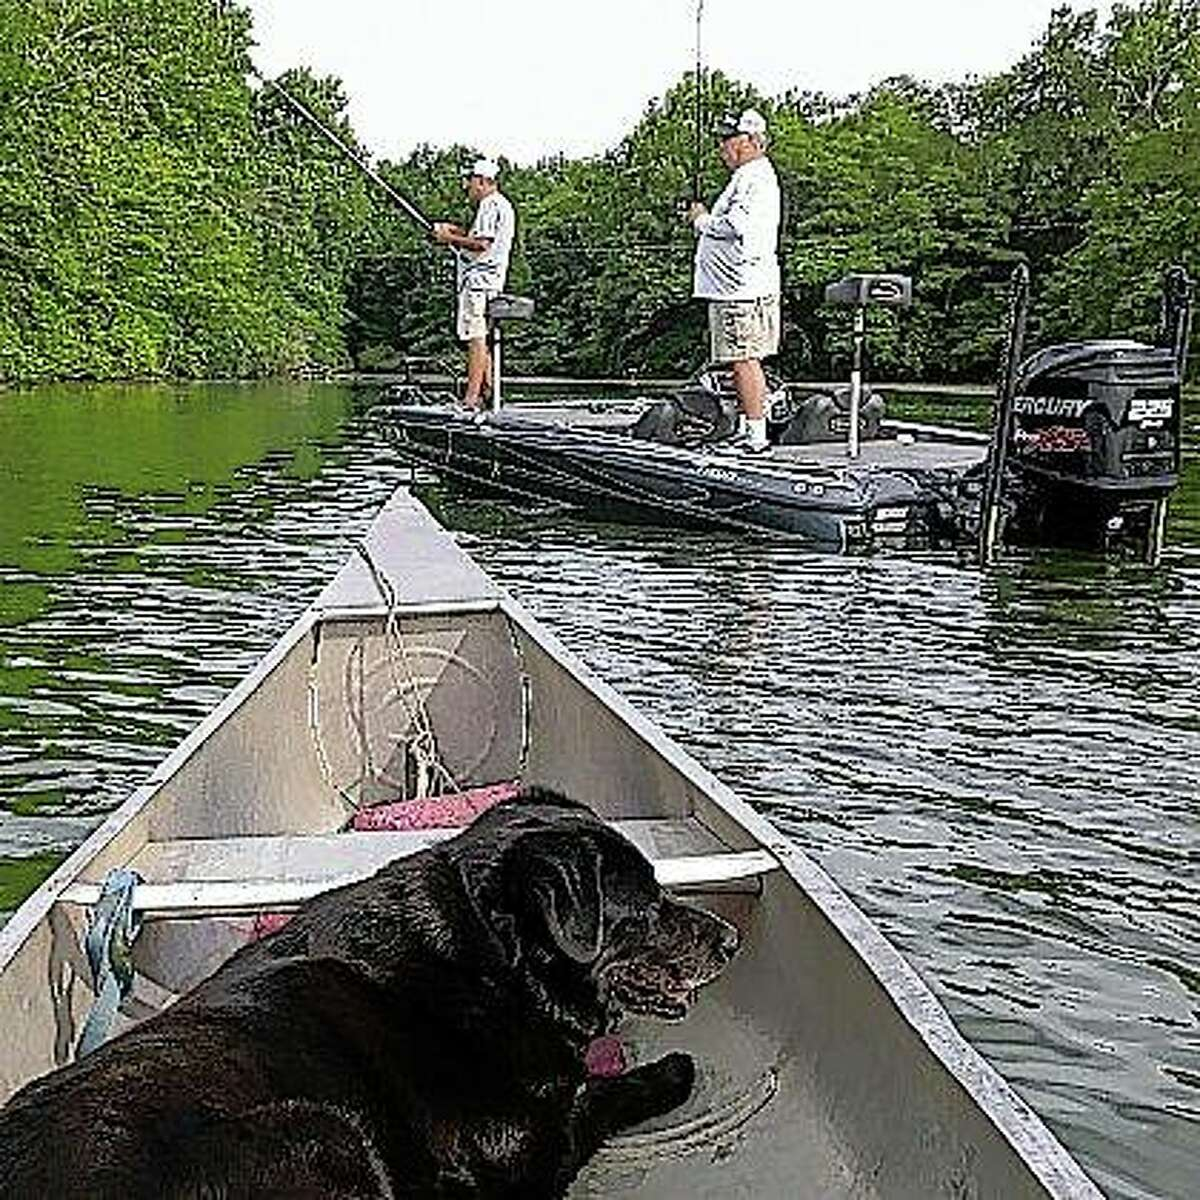 Angelo the dog looks on as two Springfield fishermen check out Lake Jacksonville hot spots ahead of an upcoming tournament.